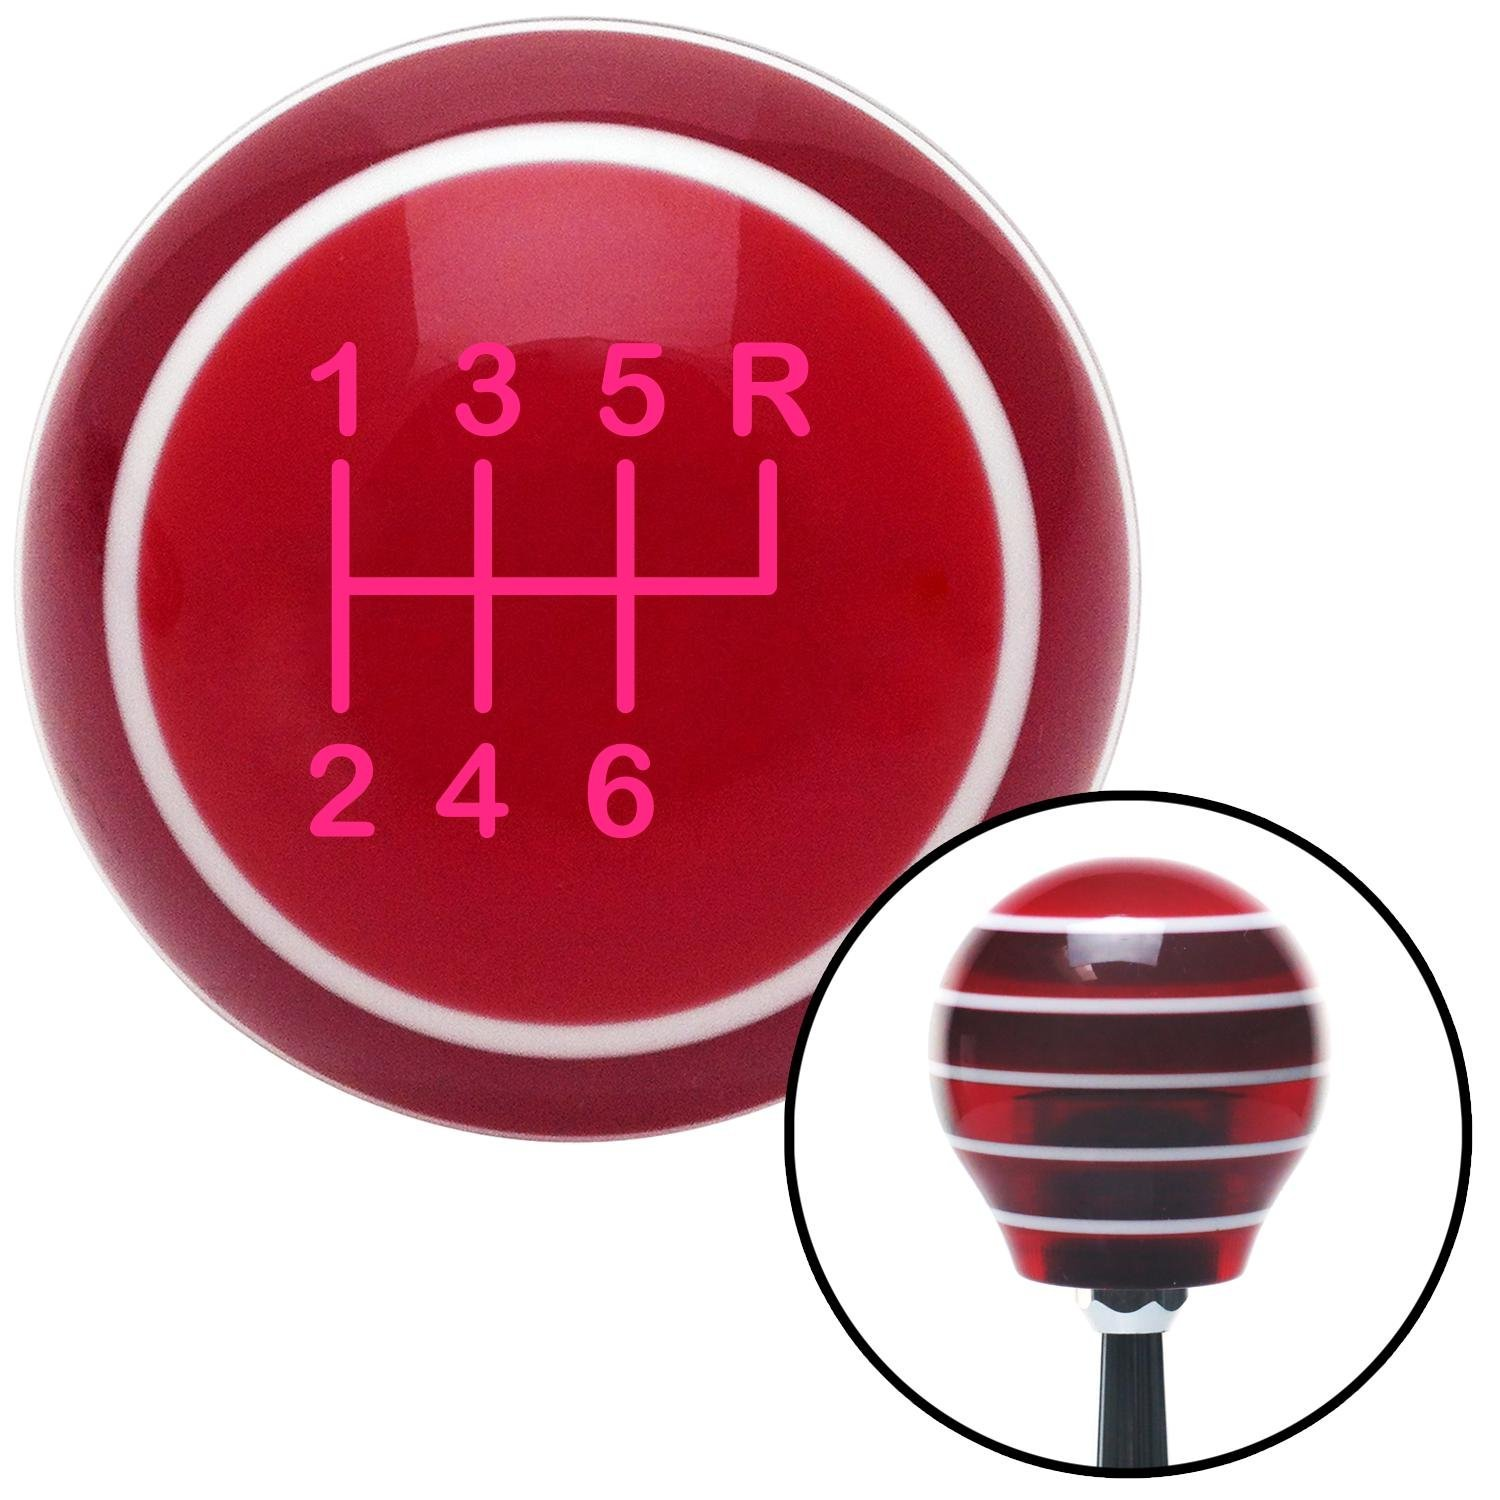 American Shifter 117637 Red Stripe Shift Knob with M16 x 1.5 Insert Pink Shift Pattern 26n